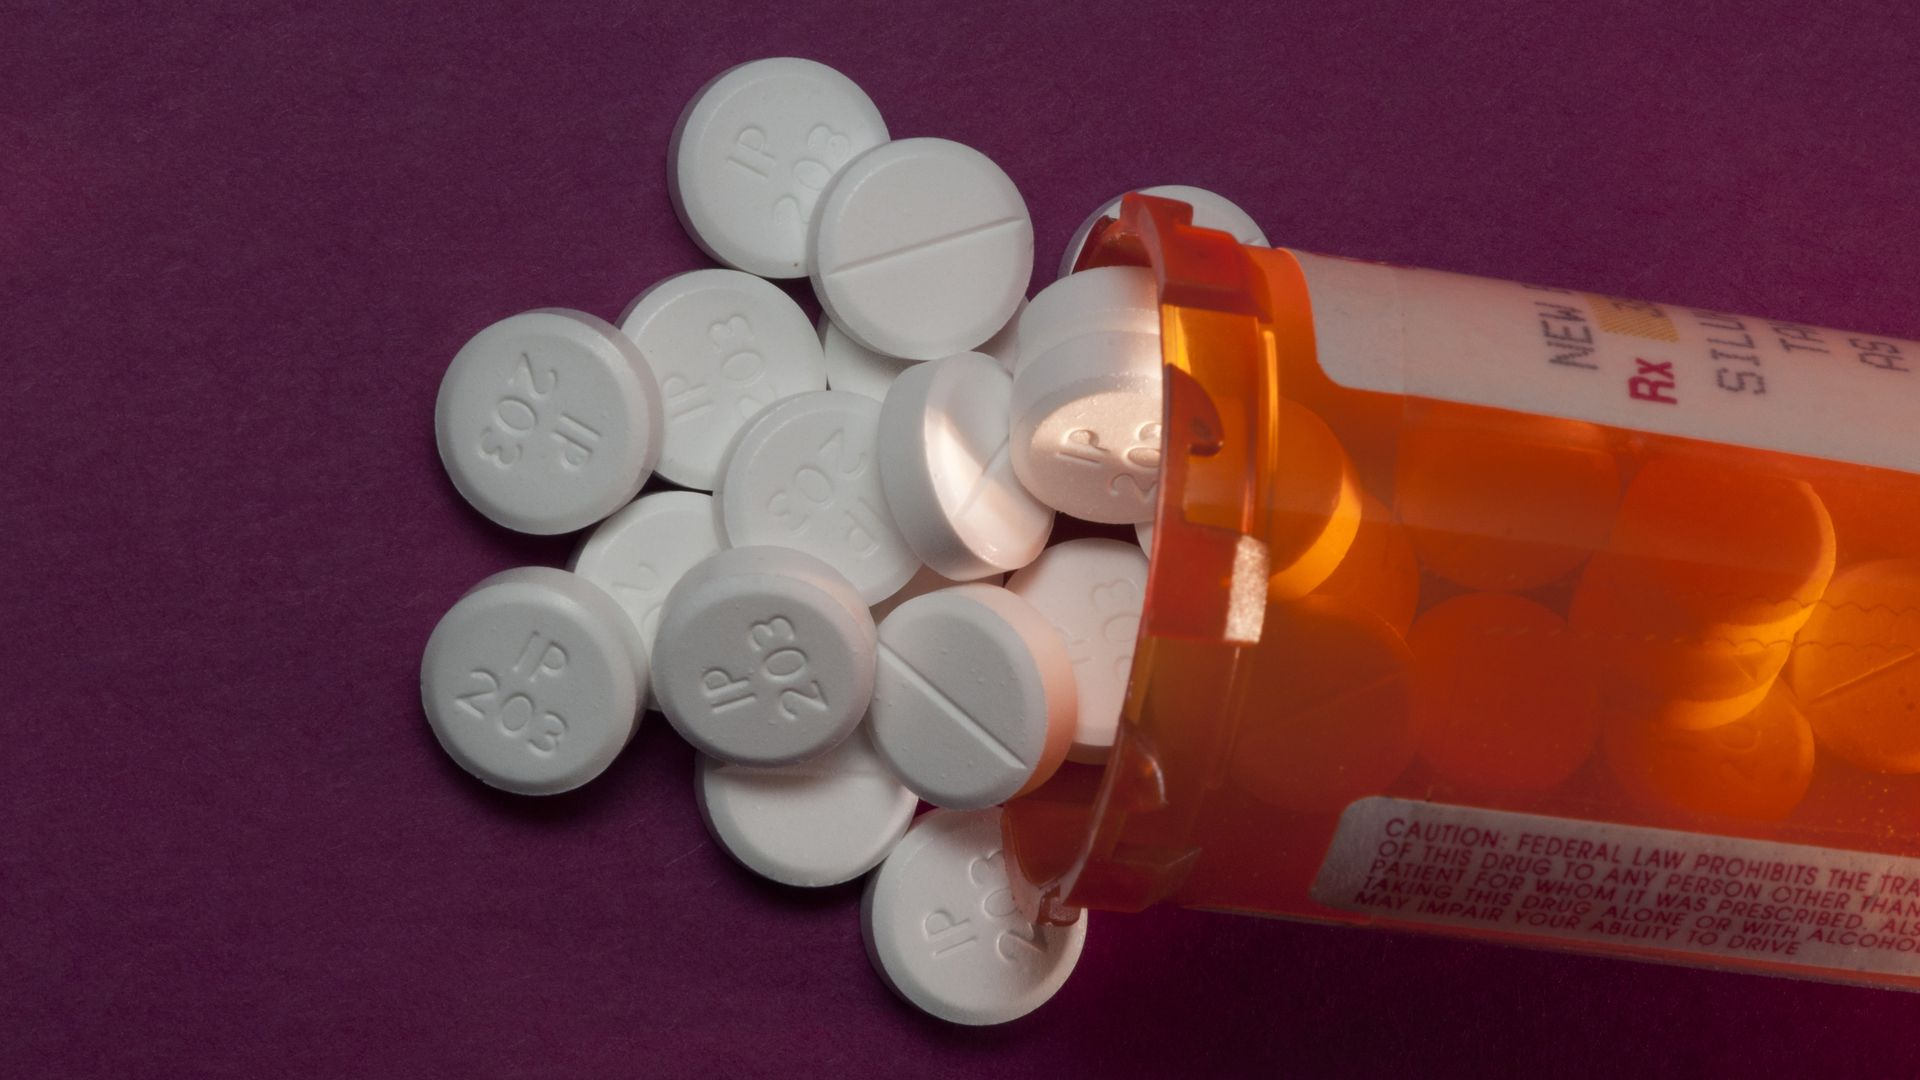 A bottle of oxycodone pills on a table.